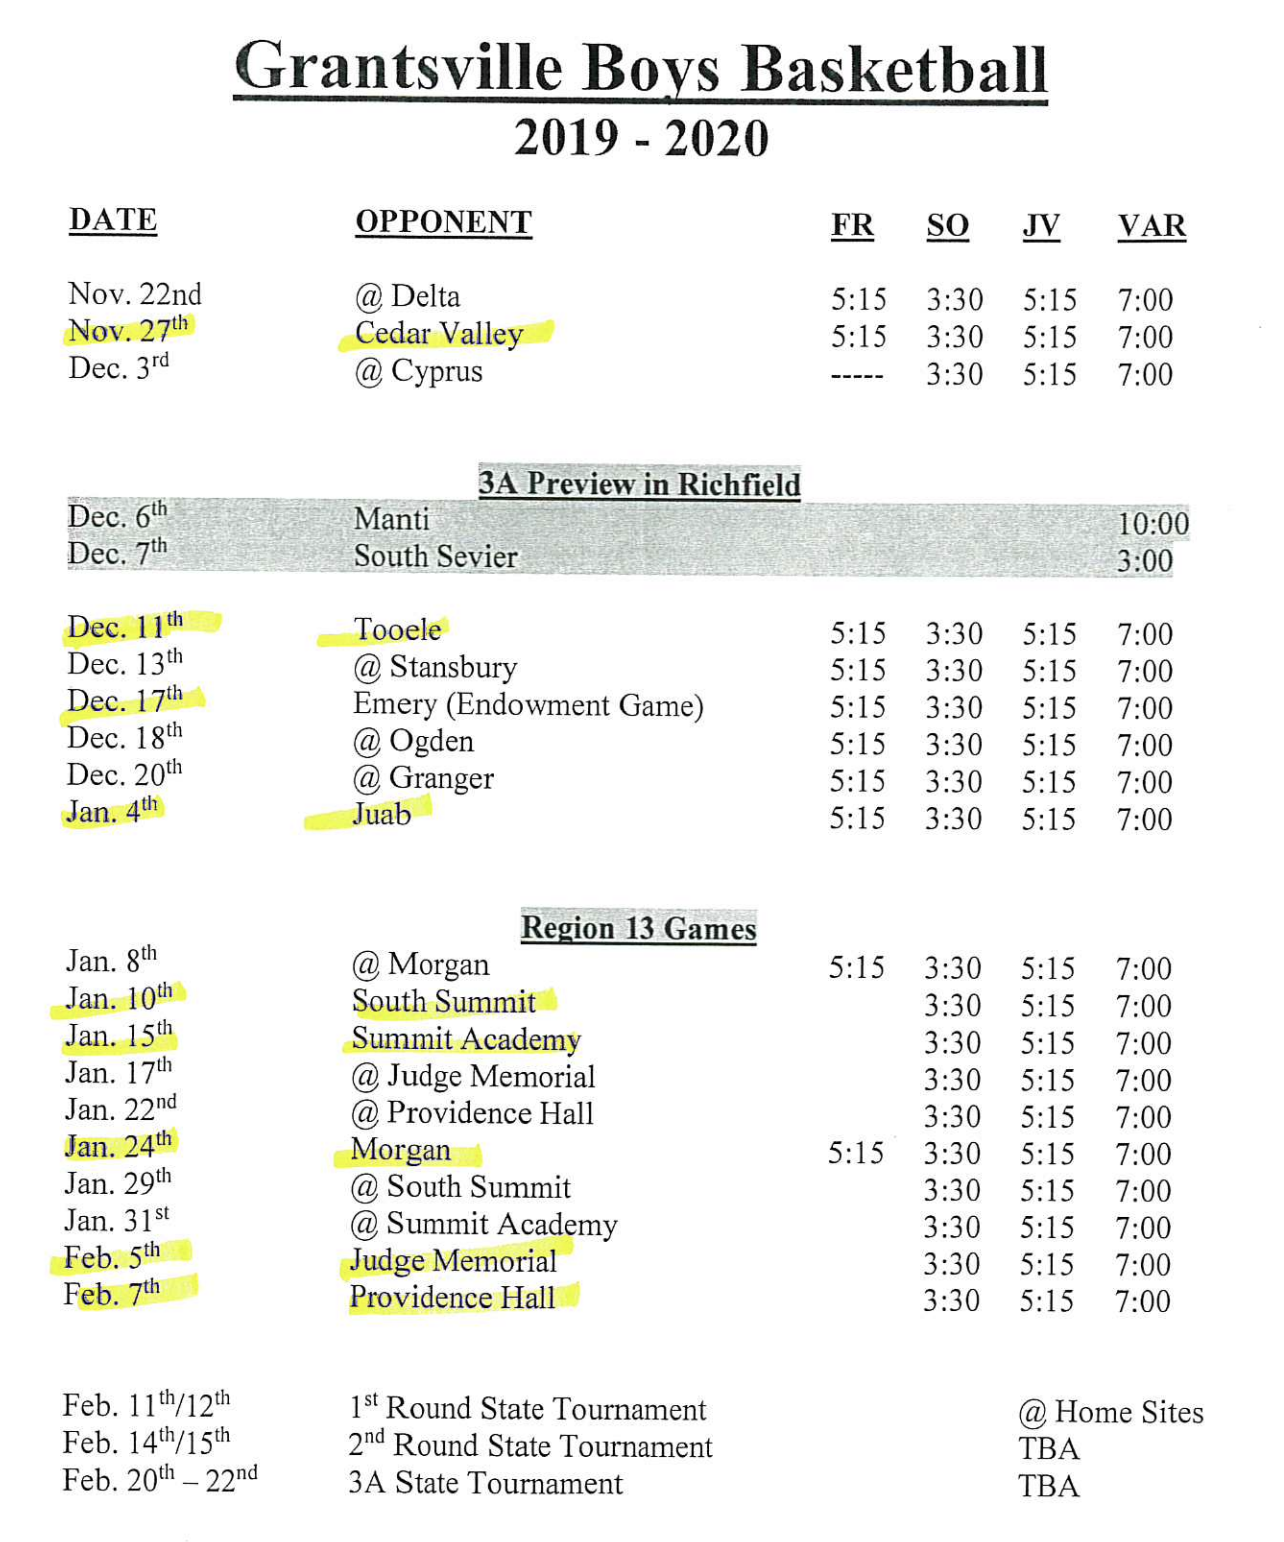 picture of boys basketball schedule